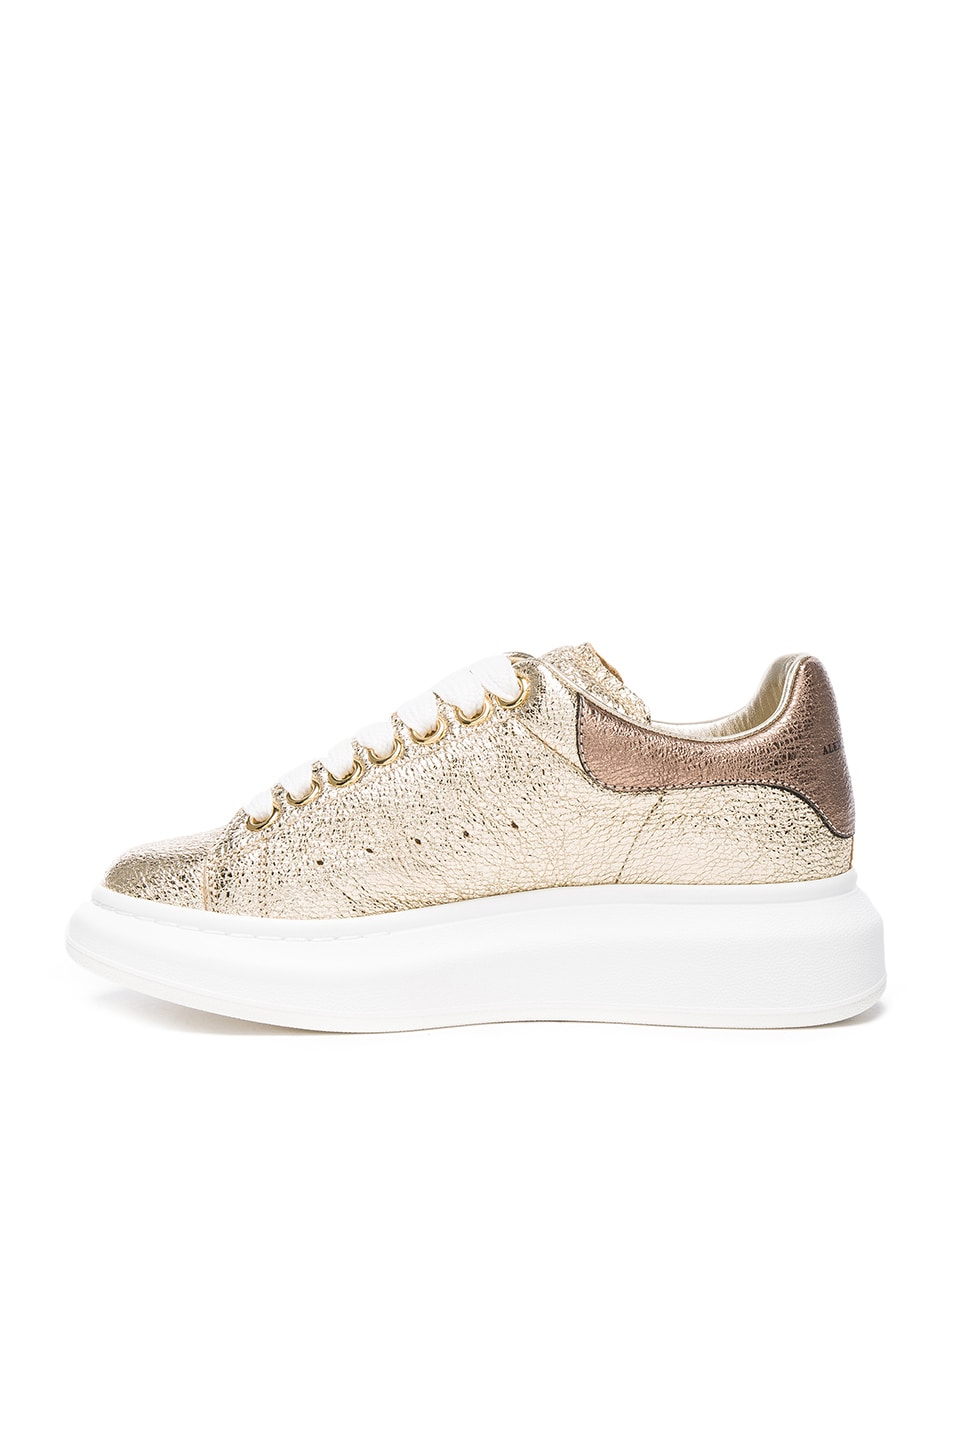 Image 5 of Alexander McQueen Leather Platform Sneakers in Gold & Boudoir